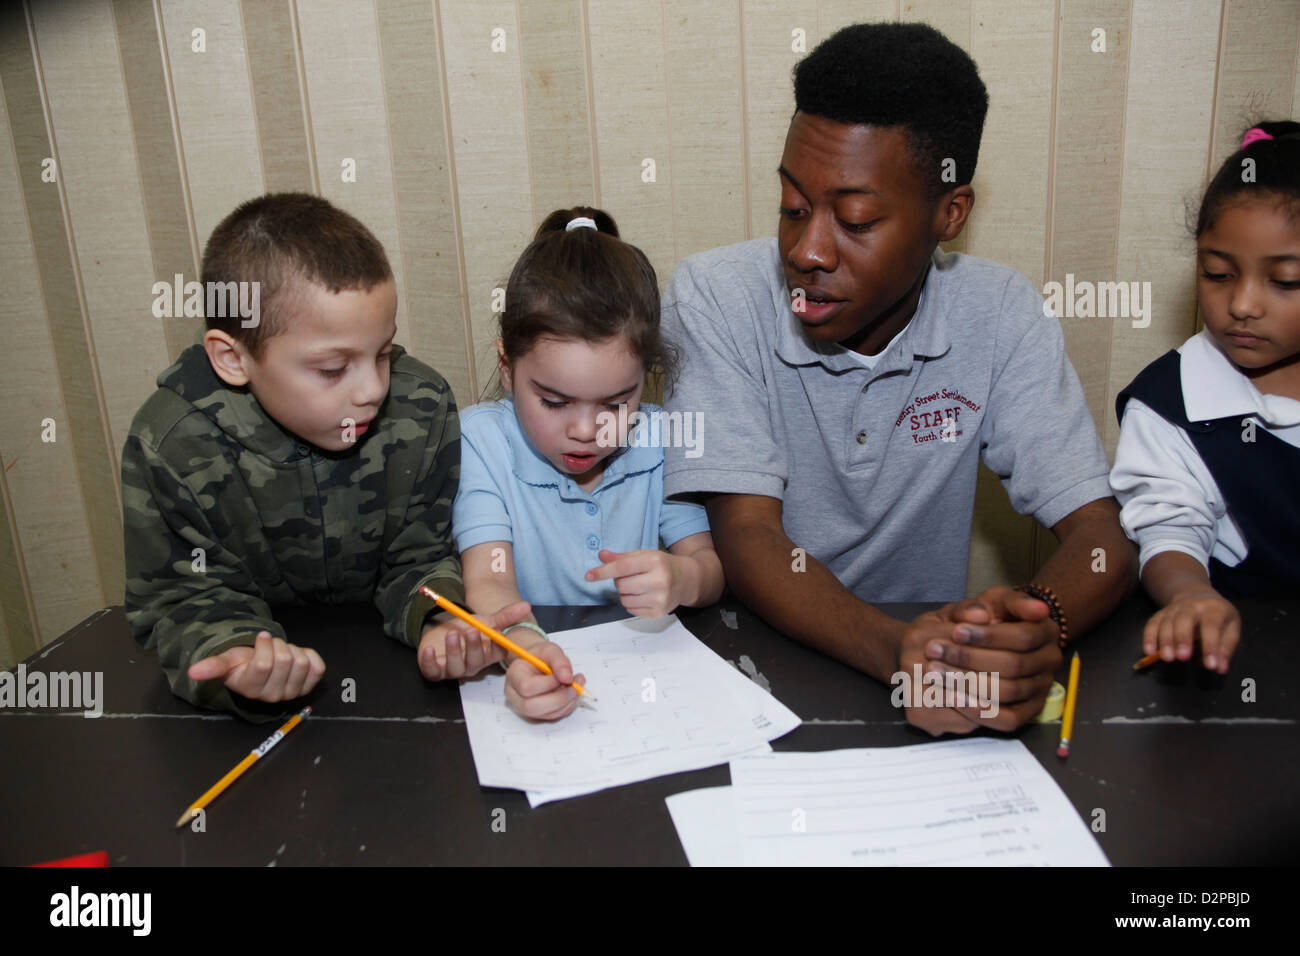 High school age boy works with younger children in an educational after school program in NYC - Stock Image